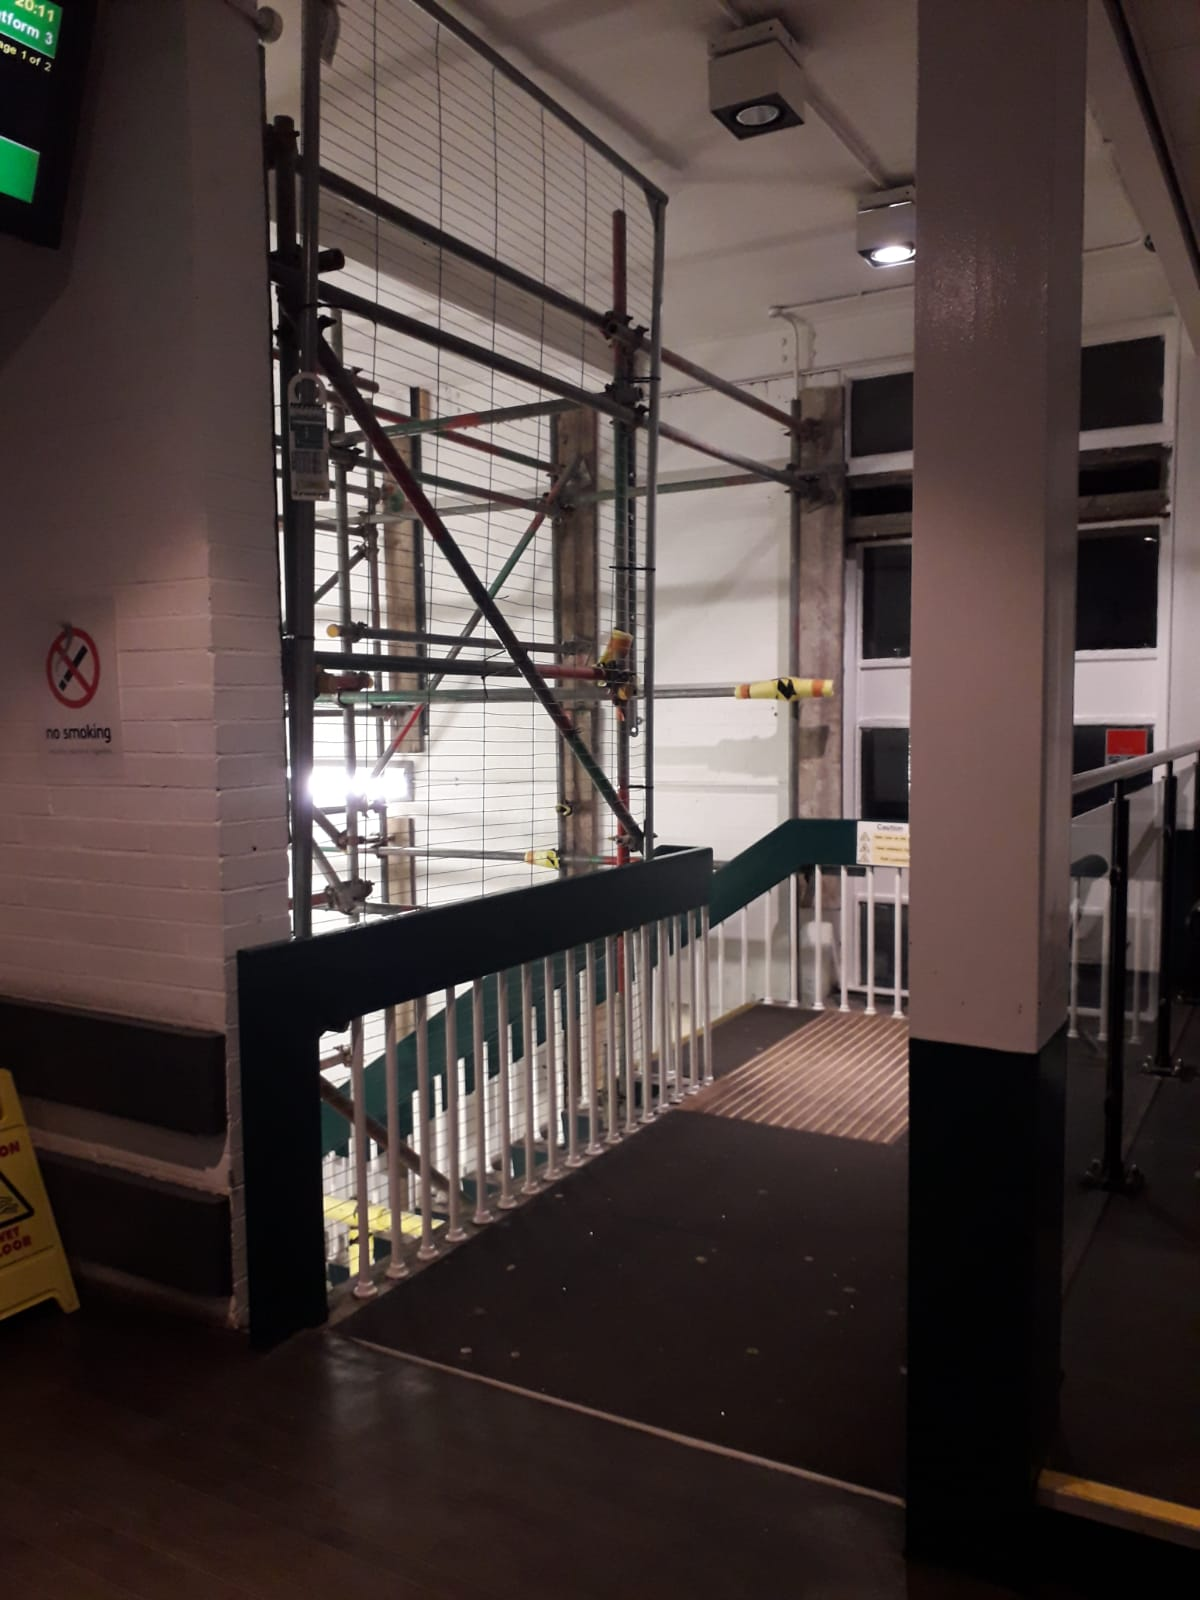 scaffolding inside the building